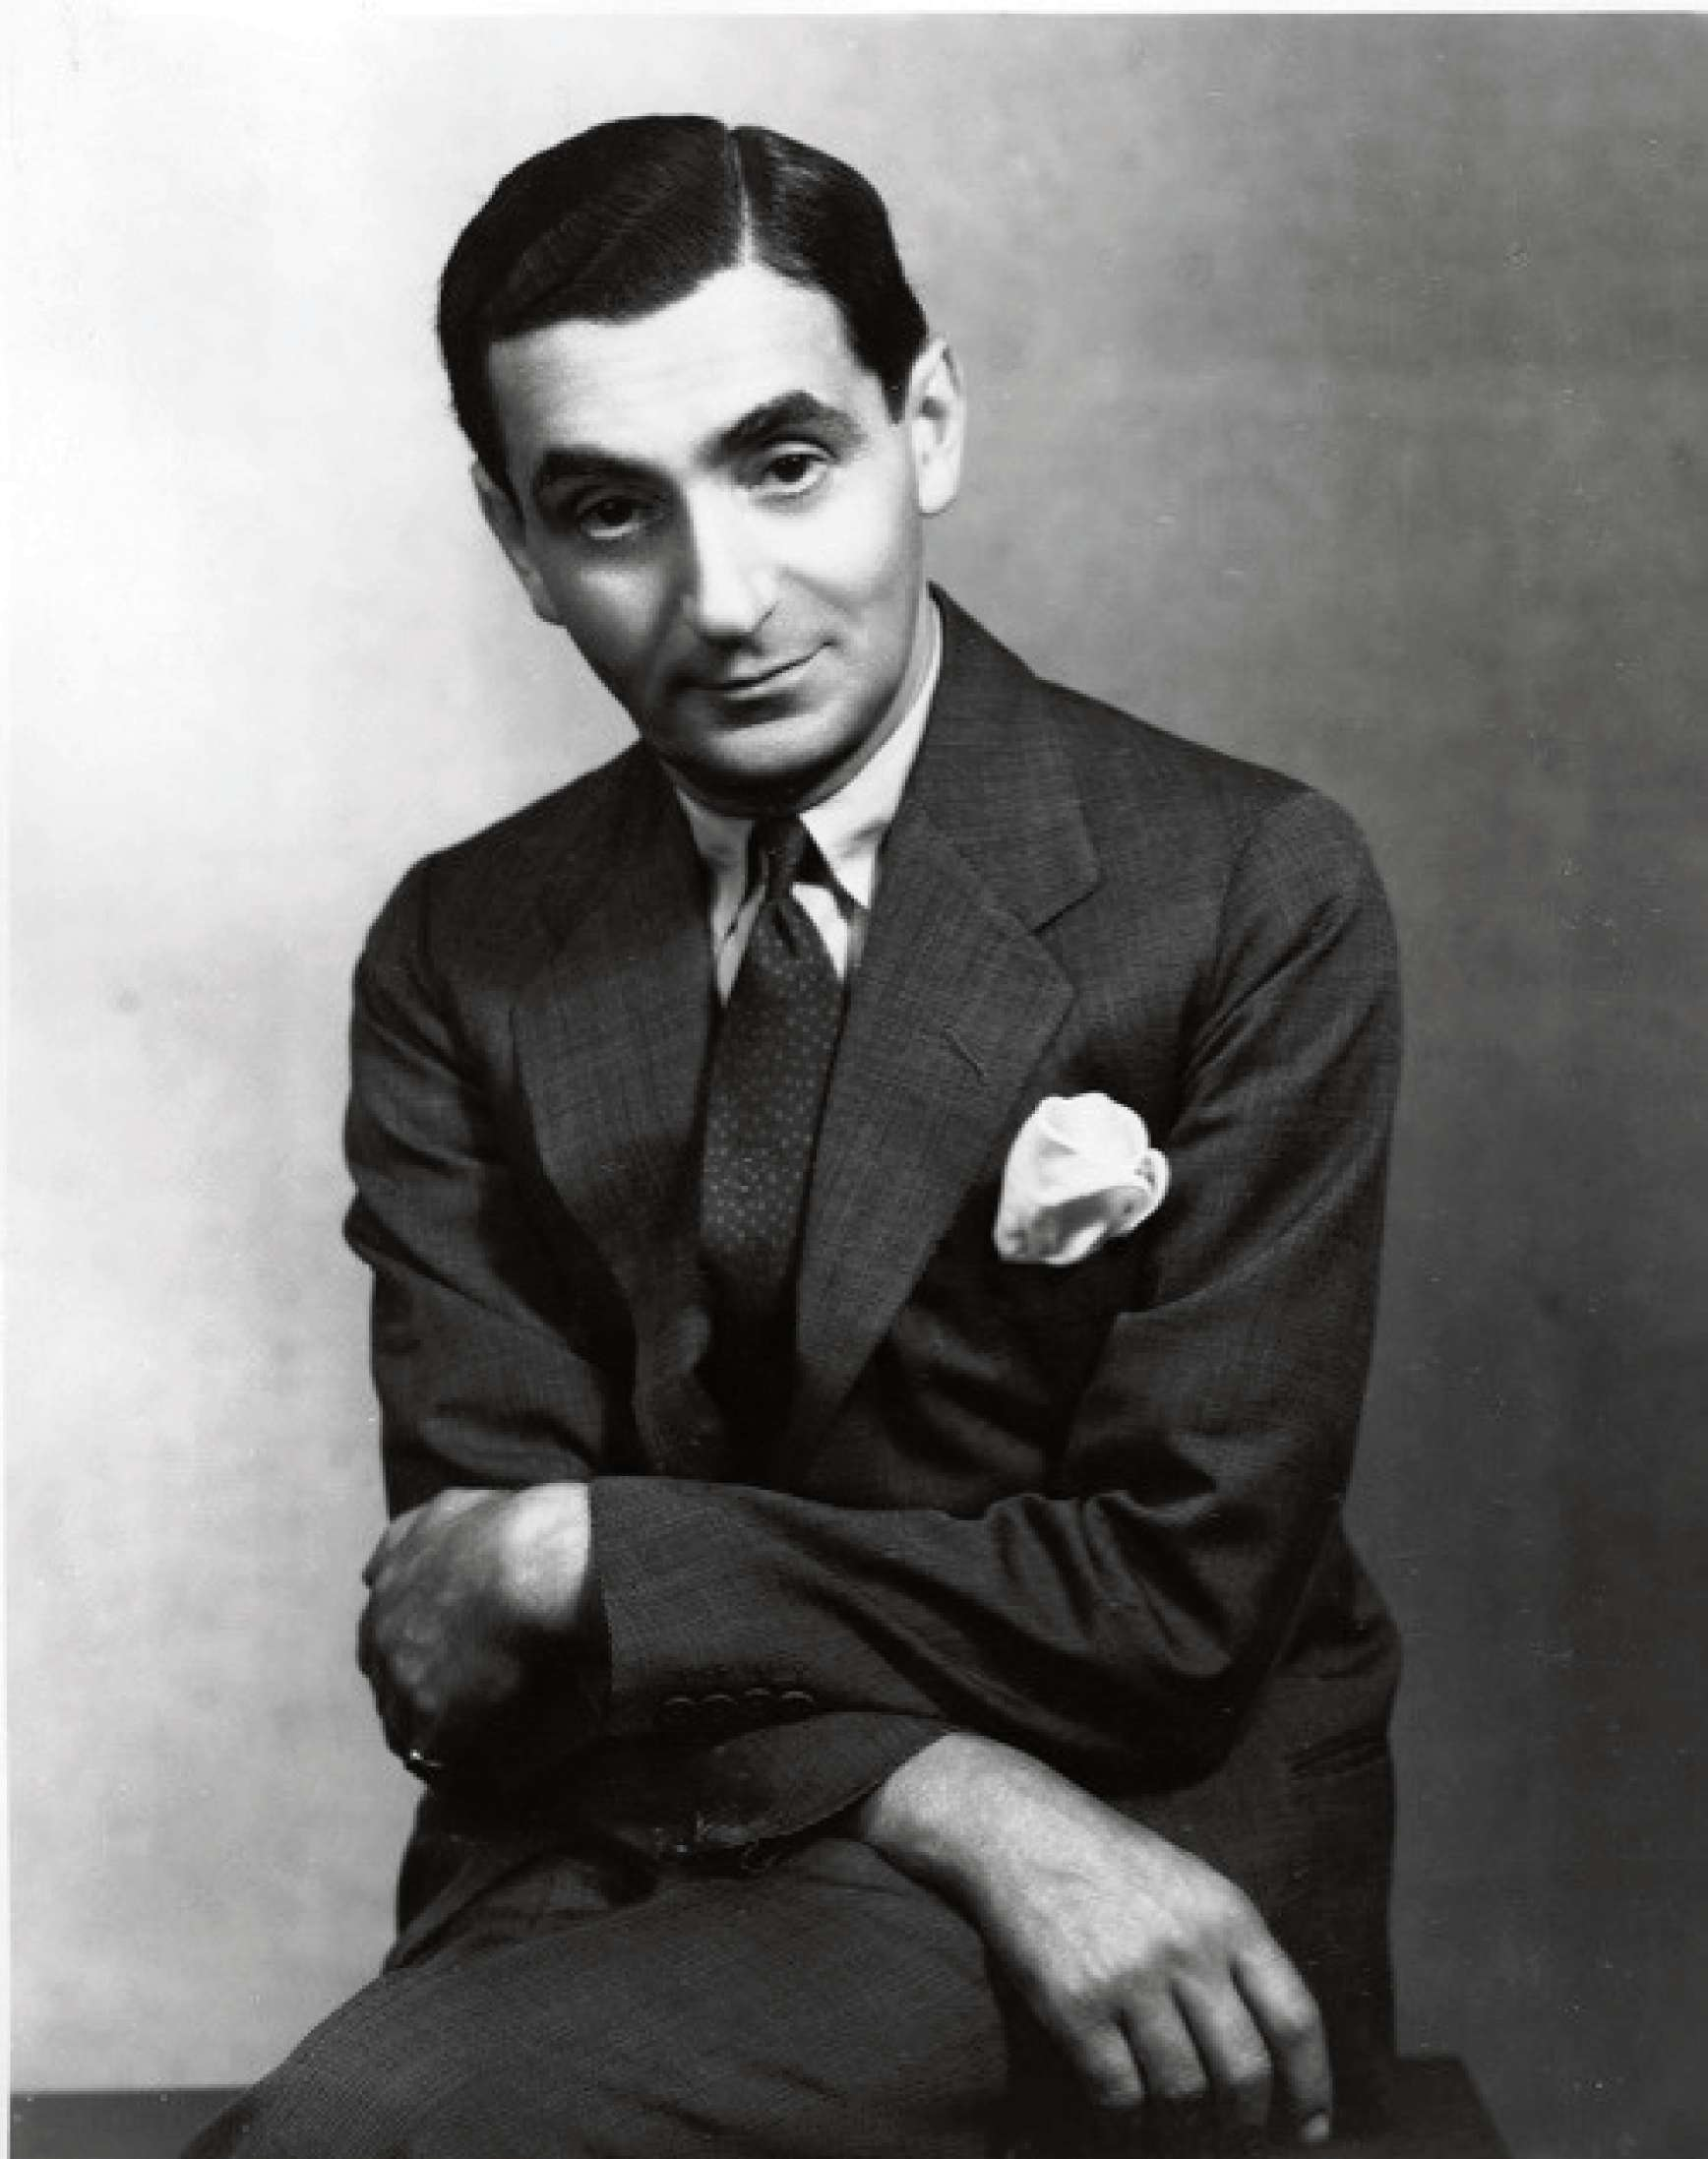 CELEBRATING 125 YEARS: Irving Berlin - one of the finest and greatest songwriters ever in American popular music